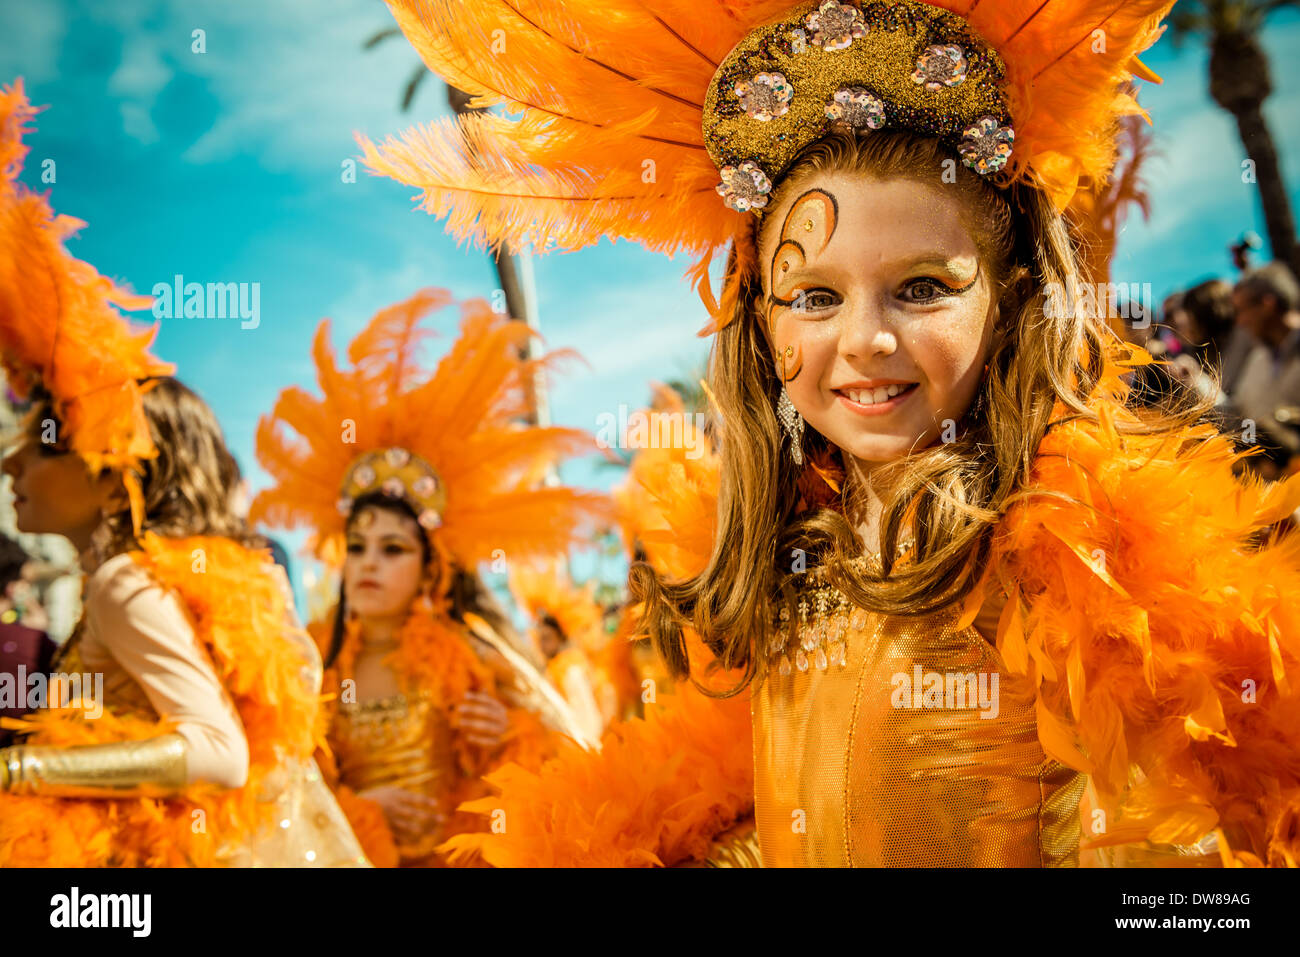 Sitges, Spain. March 2nd, 2014: Children revellers dance during the Sunday parade of the children carnival parade Stock Foto